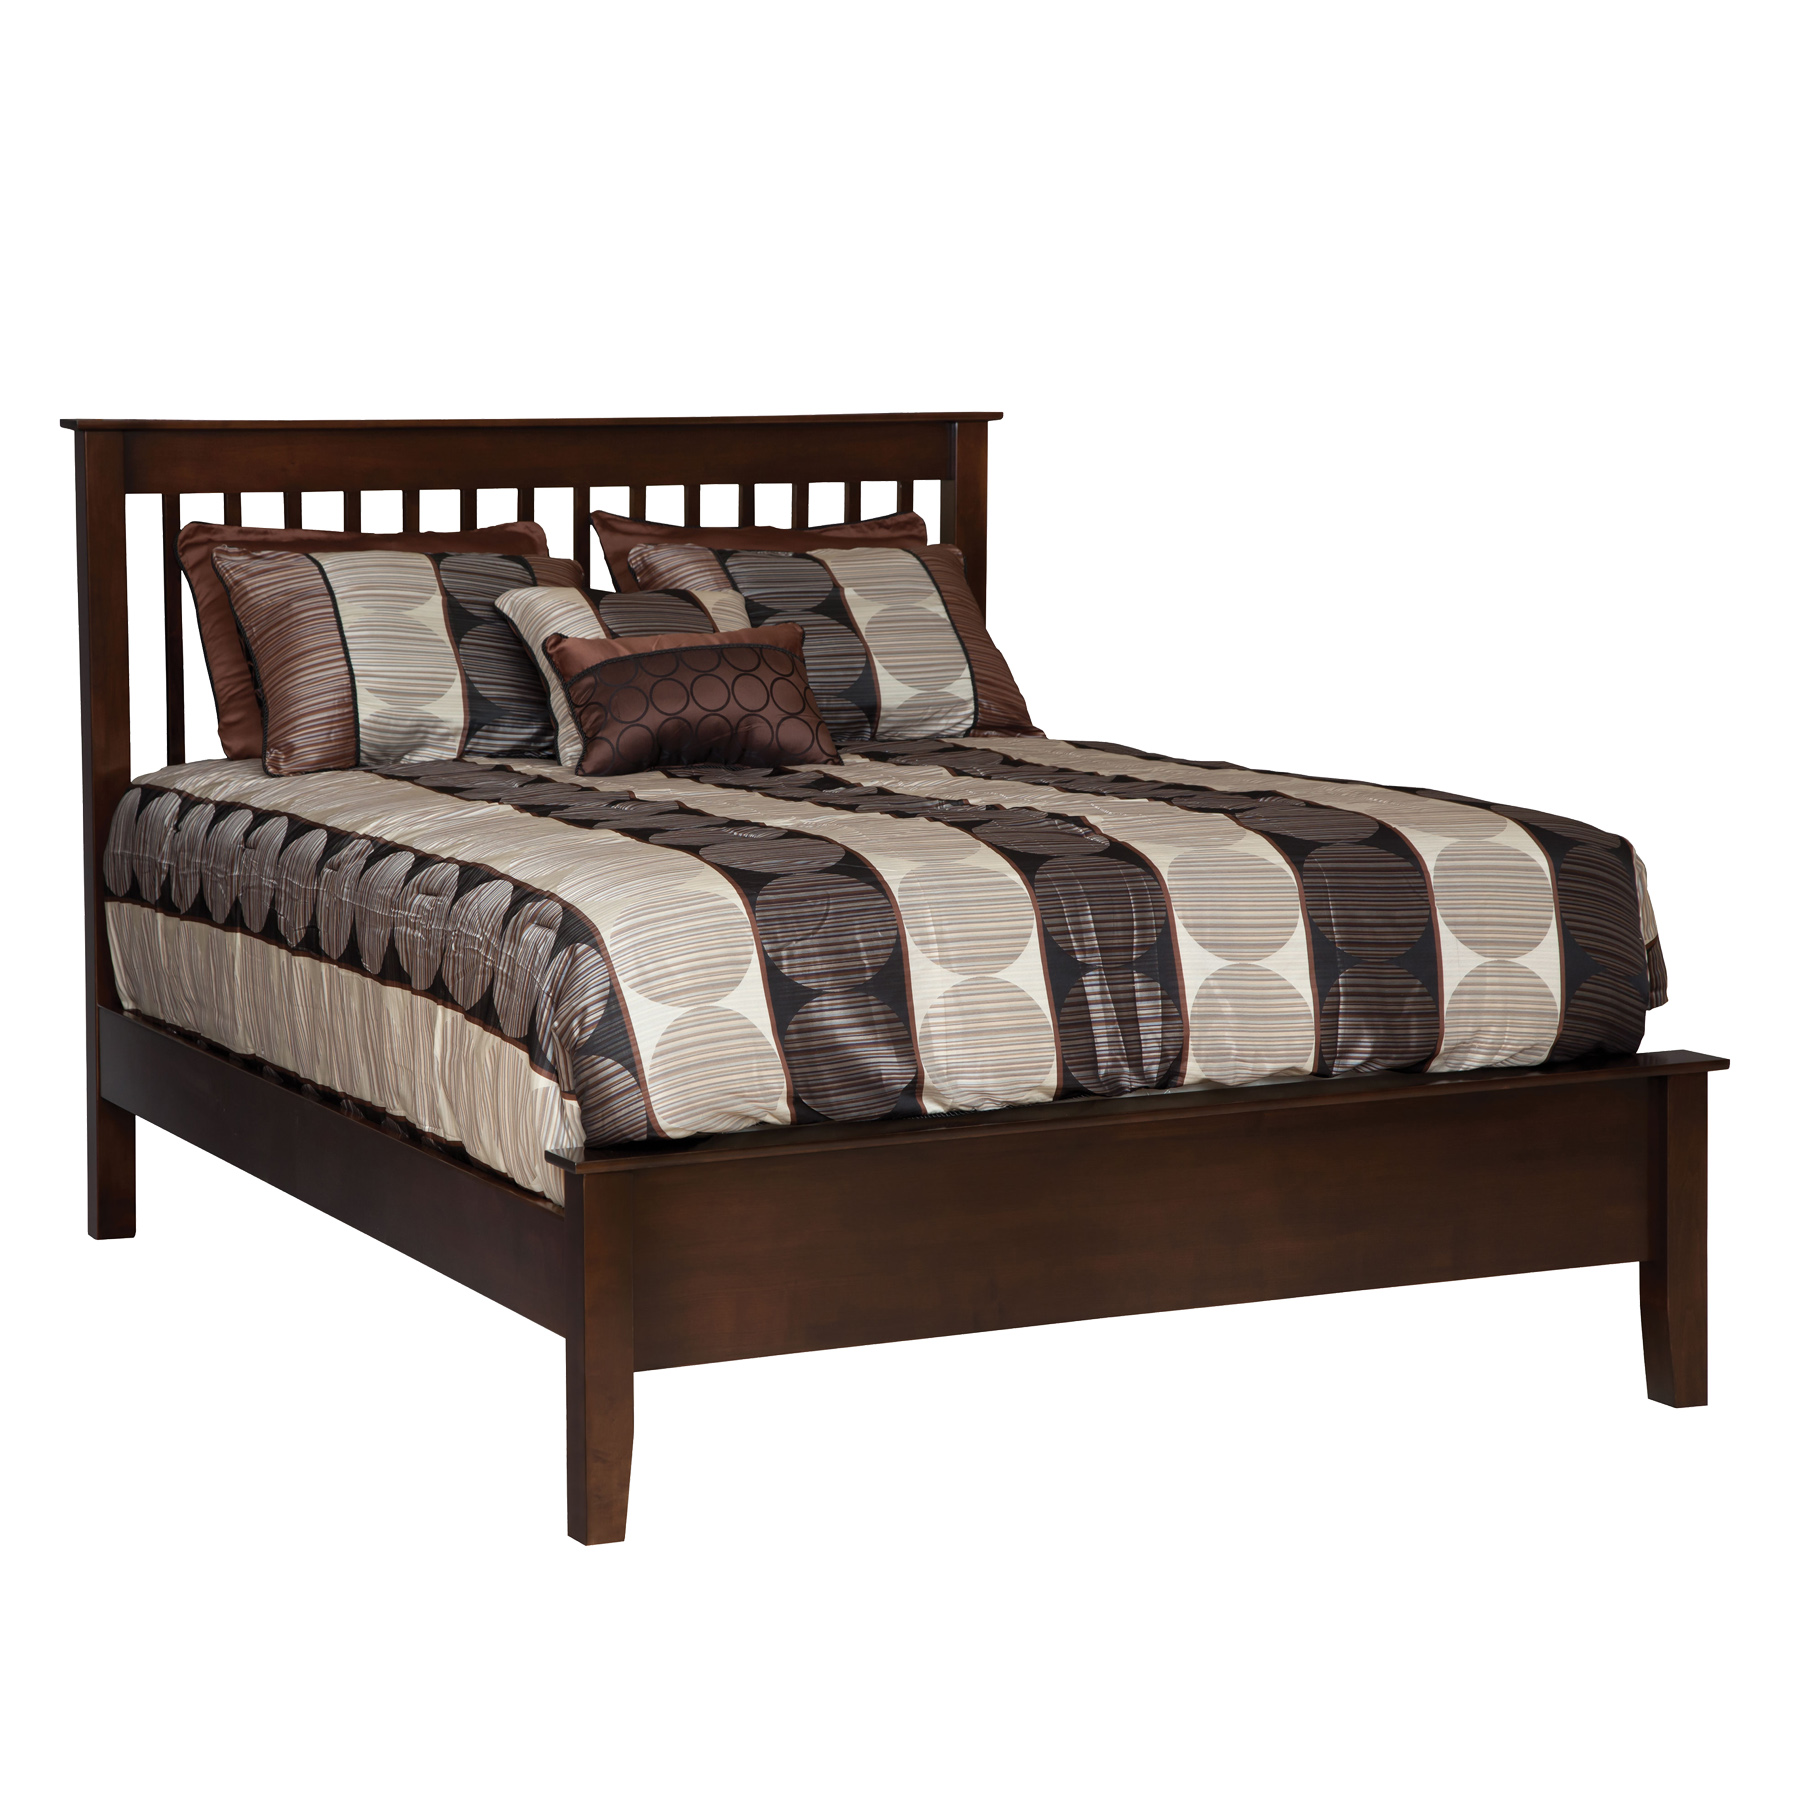 English Shaker Spindle Bed